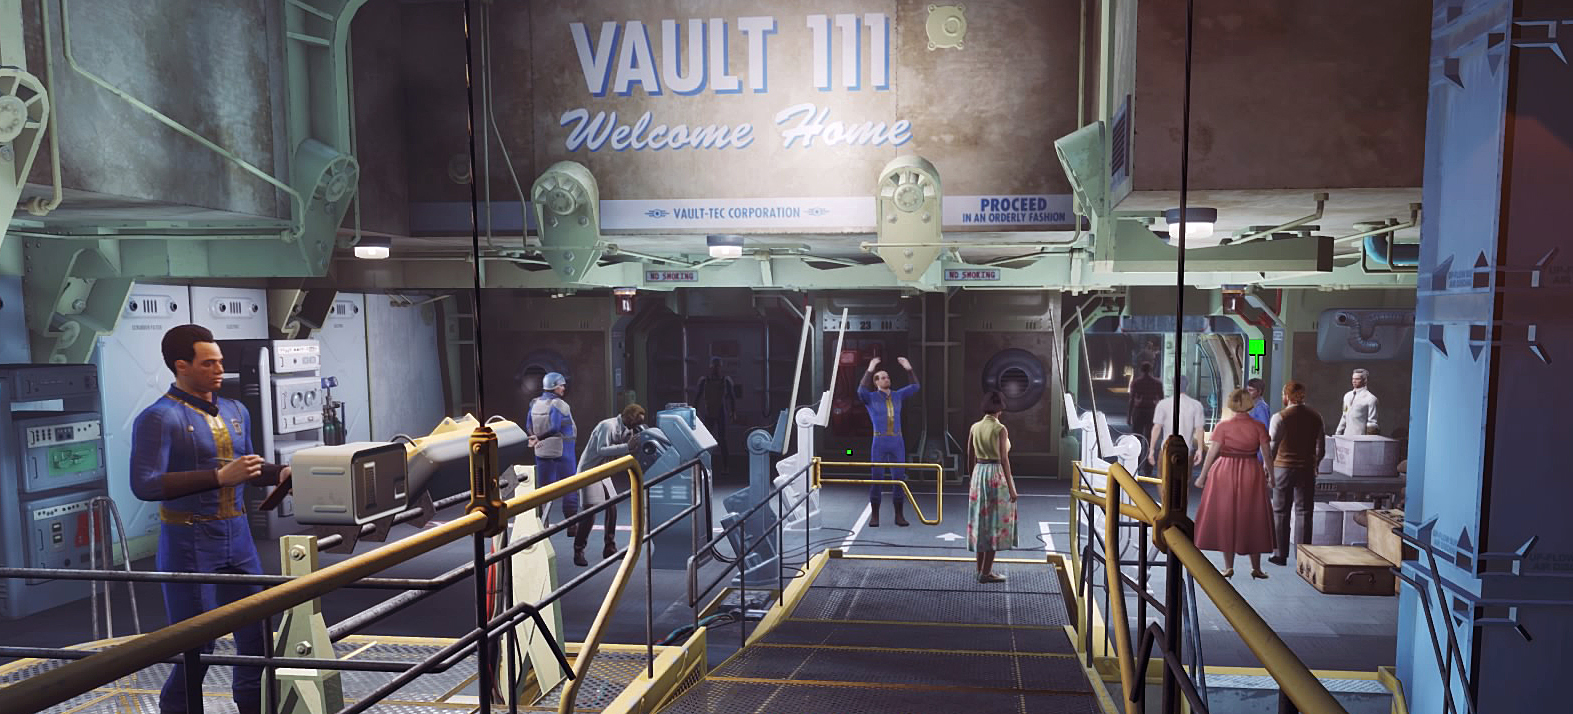 The history of Fallout 4